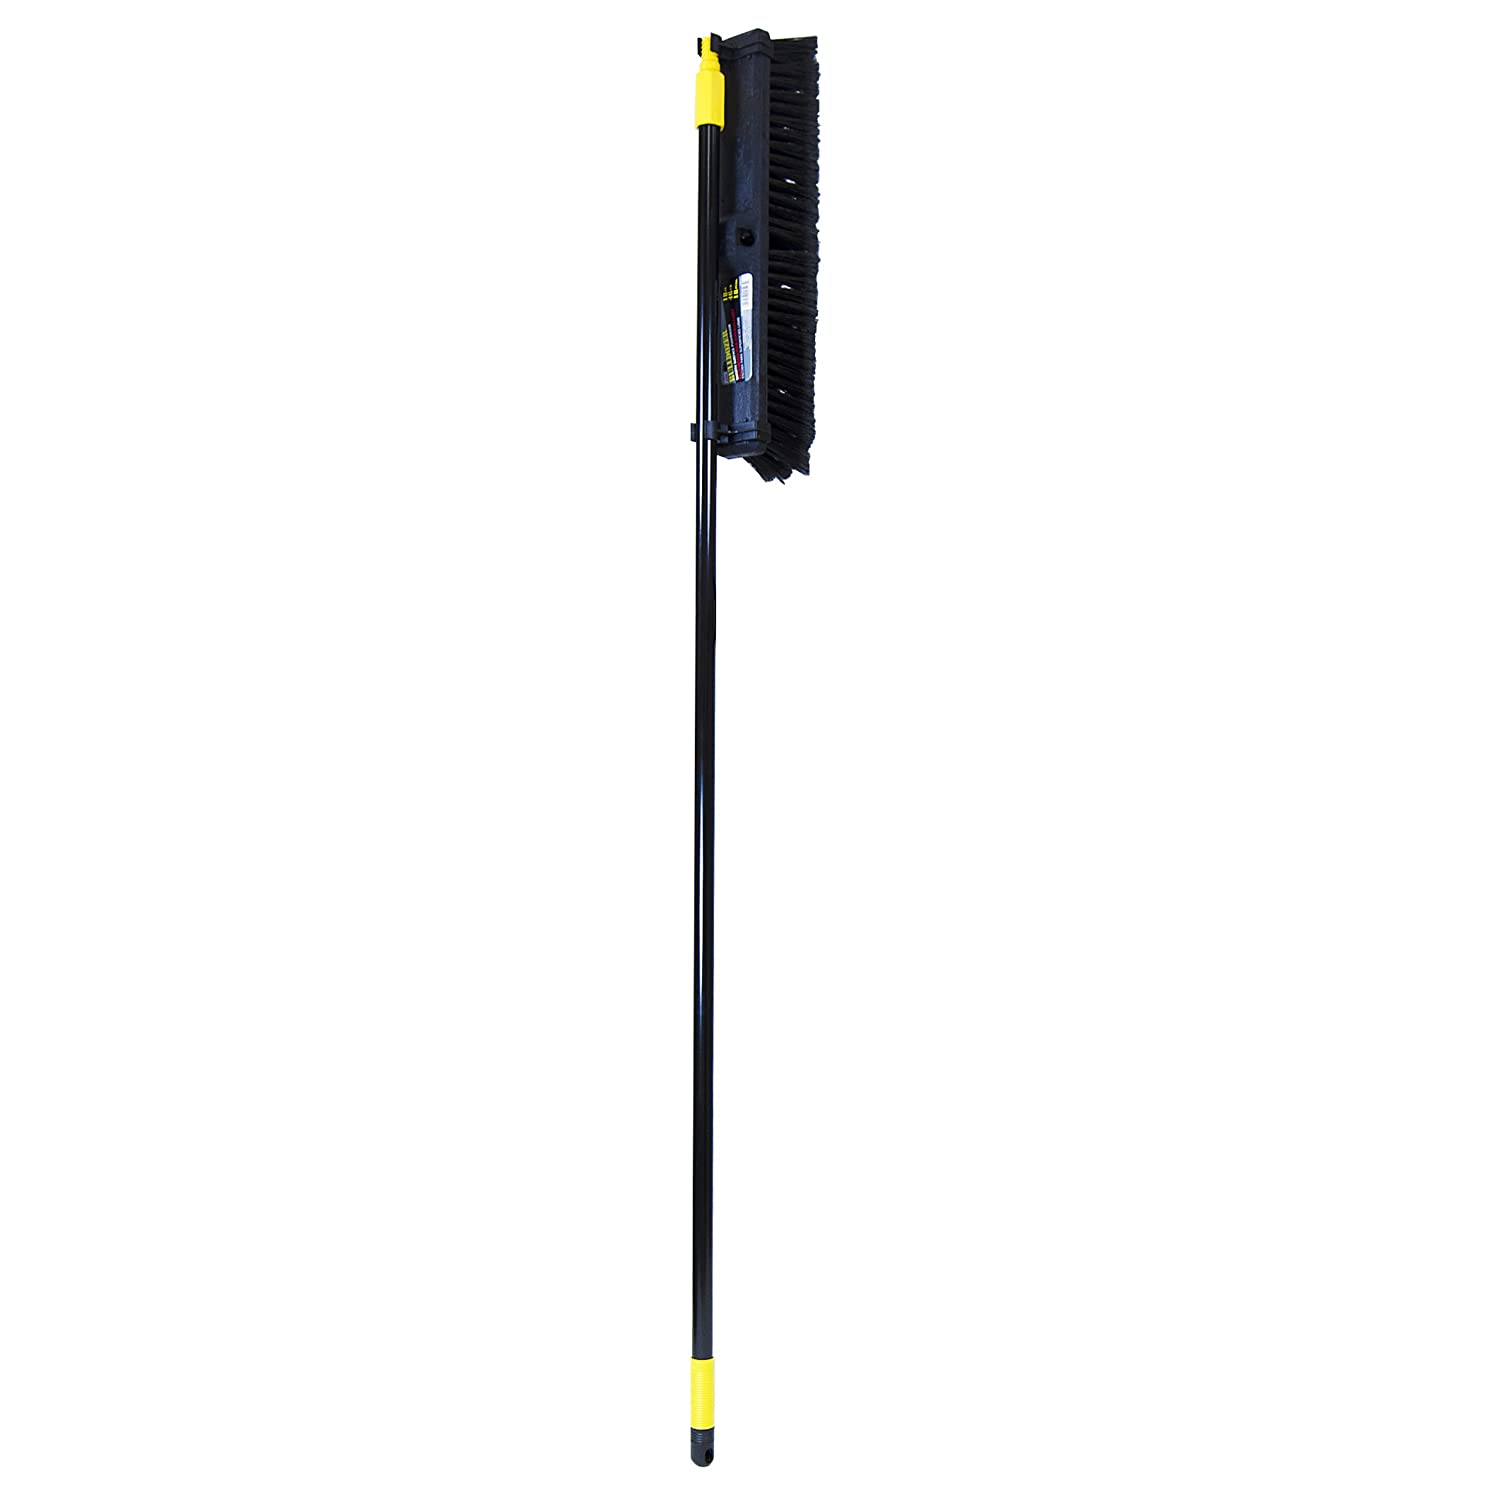 Quickie Bulldozer 18-Inch Smooth Surface Push Broom 00523 511665 outdoor clean